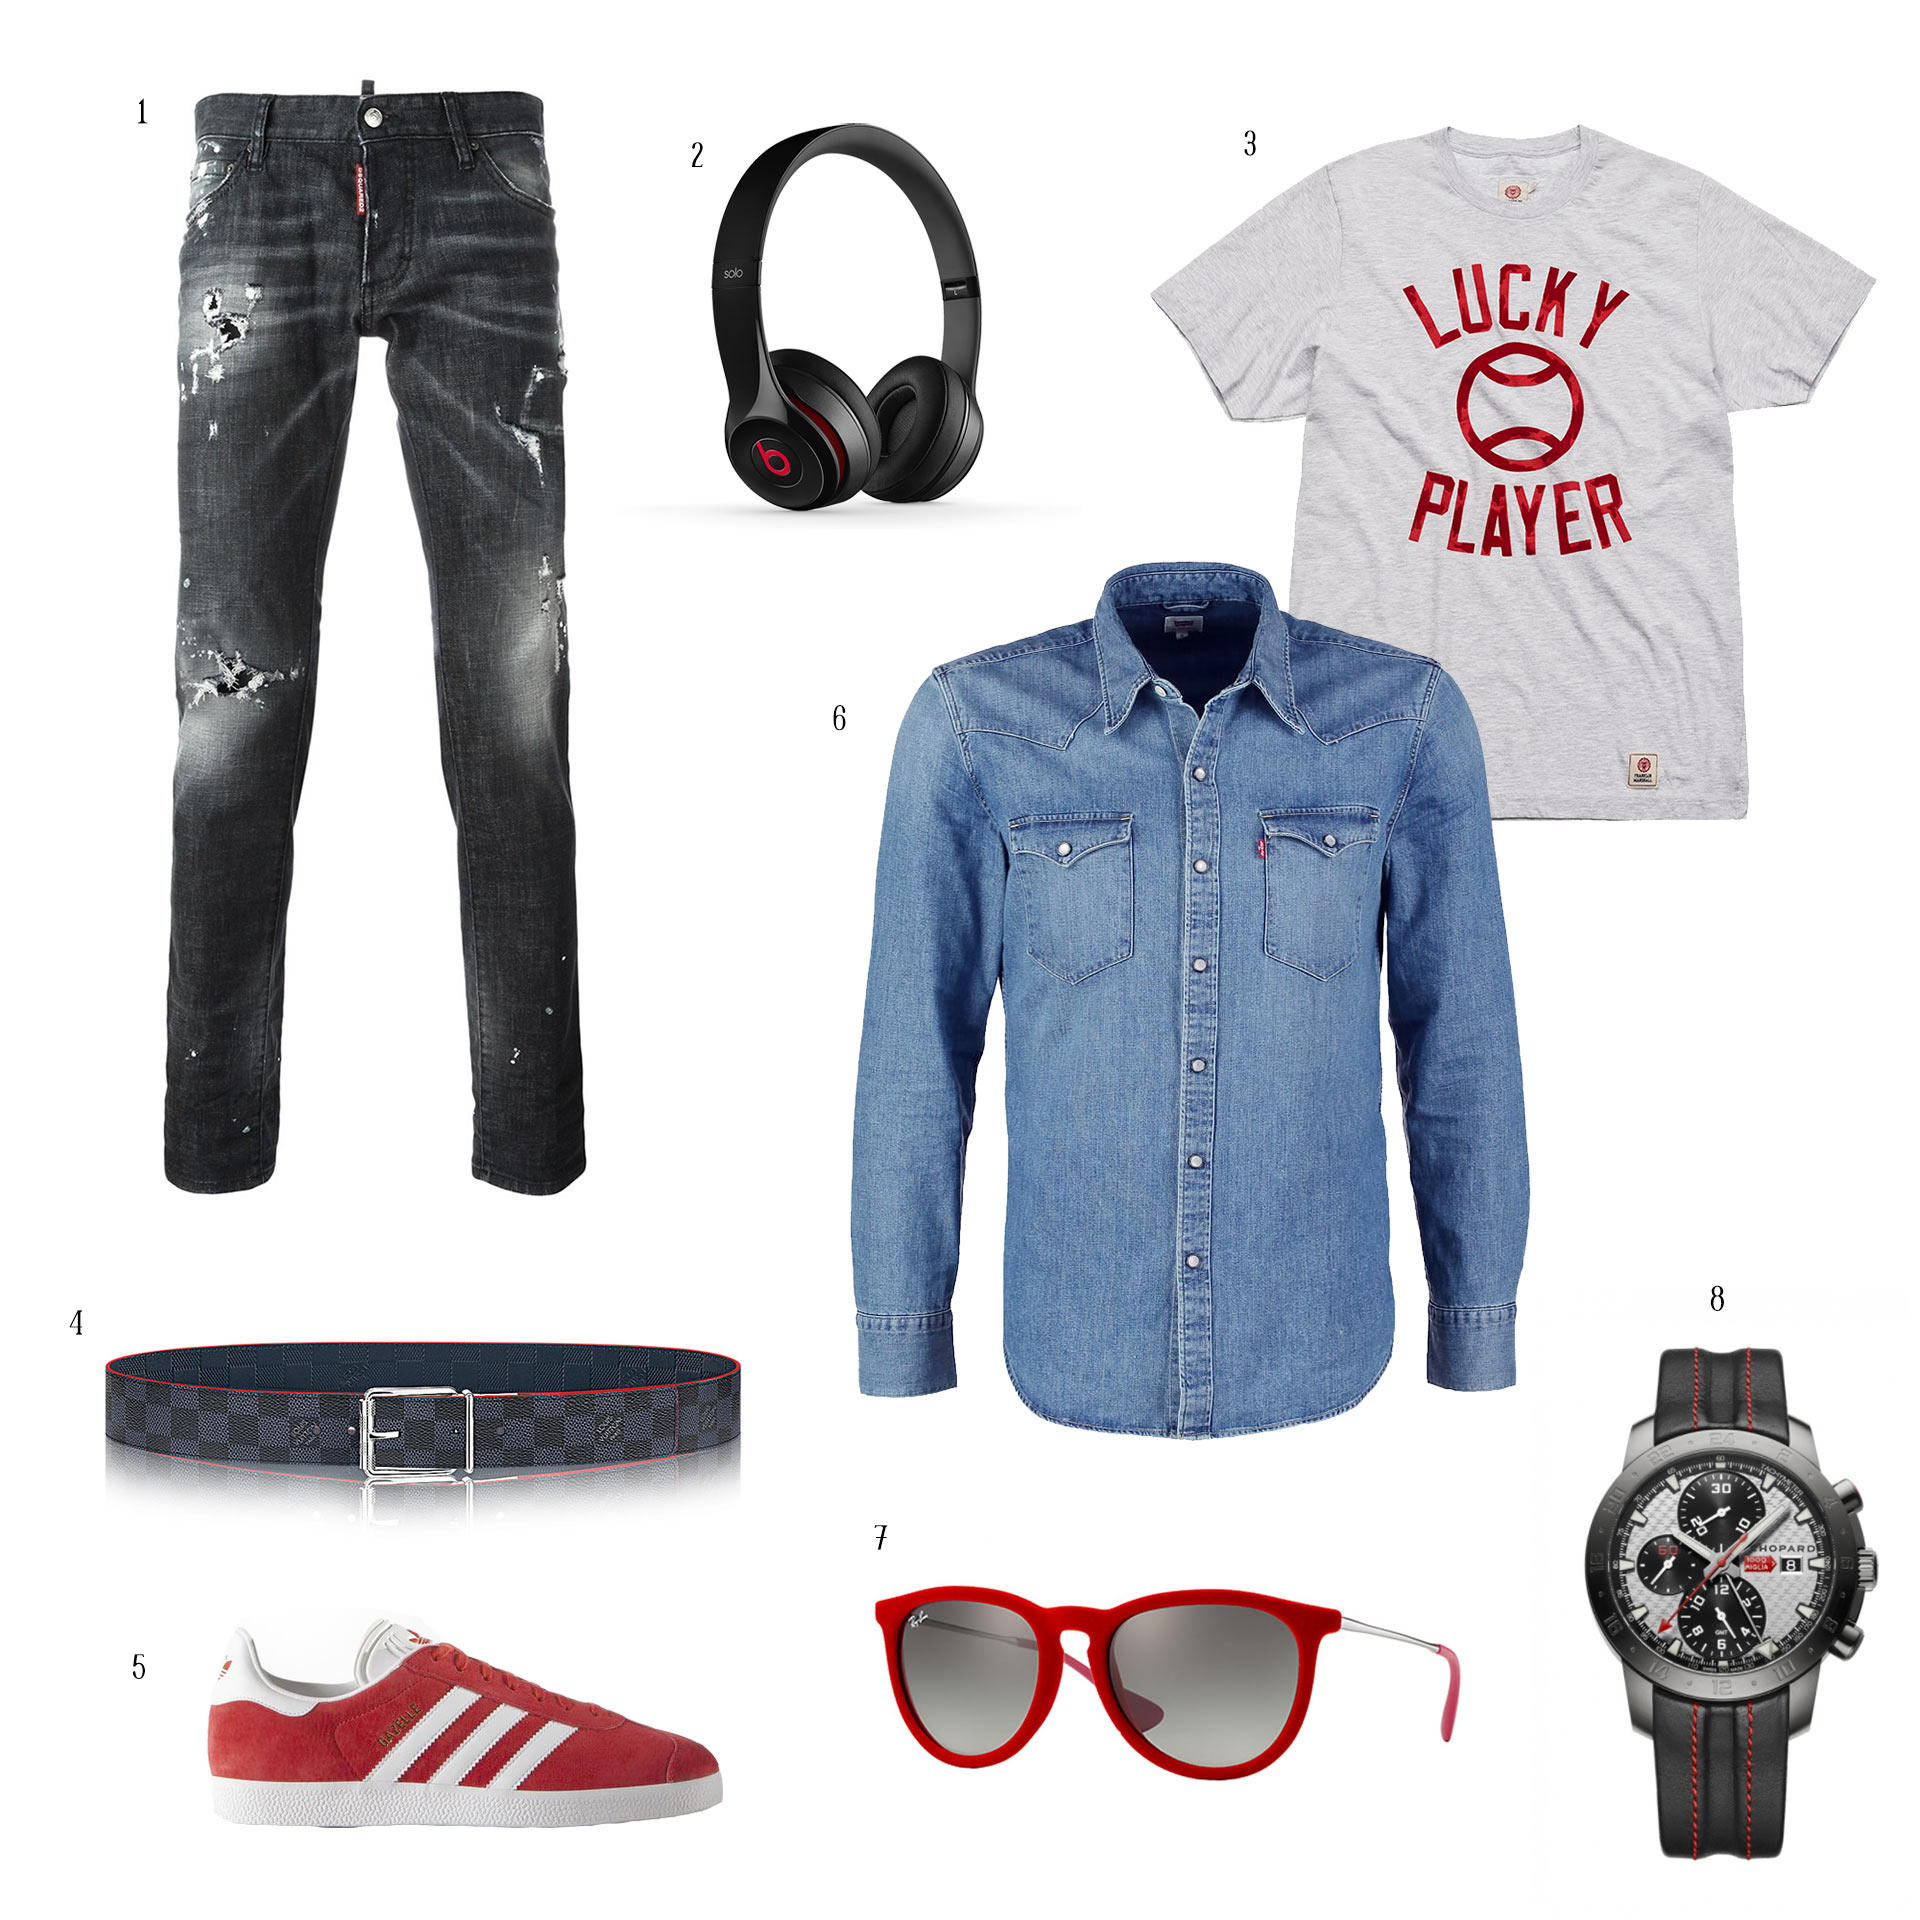 OUTFIT «DENIM & RED» BY A.SERRÁN